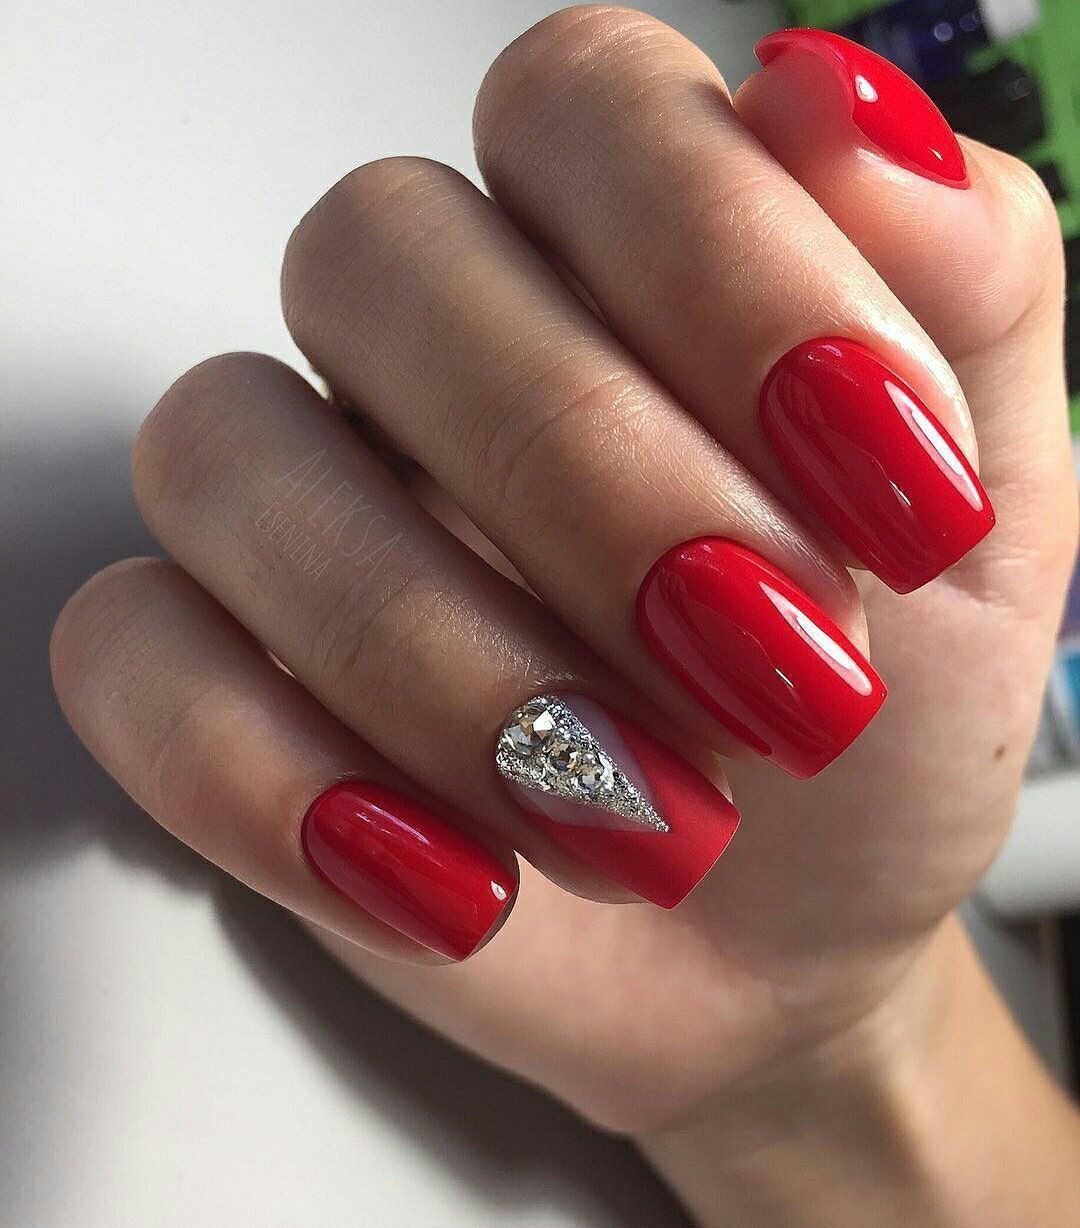 Stunning 38 Trendy Red Nails For Holiday 2019 Http 101outfit Com Index Php 2018 10 20 38 Trendy Red Nails For Ho Red Gel Nails Red Acrylic Nails Simple Nails